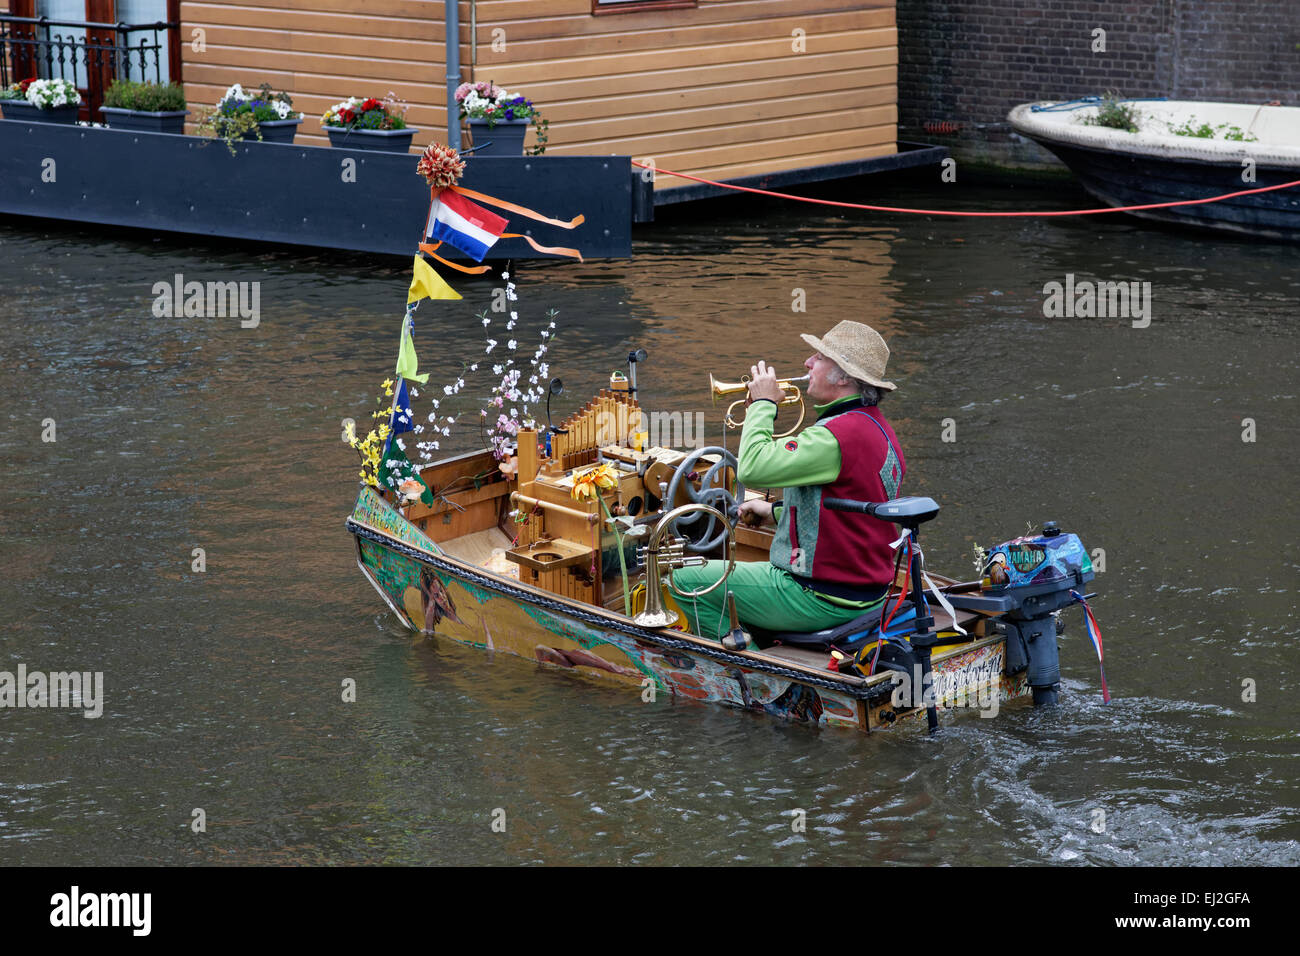 Reinier Sijpkens,  The Music Boat Man, performs in  Amsterdam, Holland - Stock Image